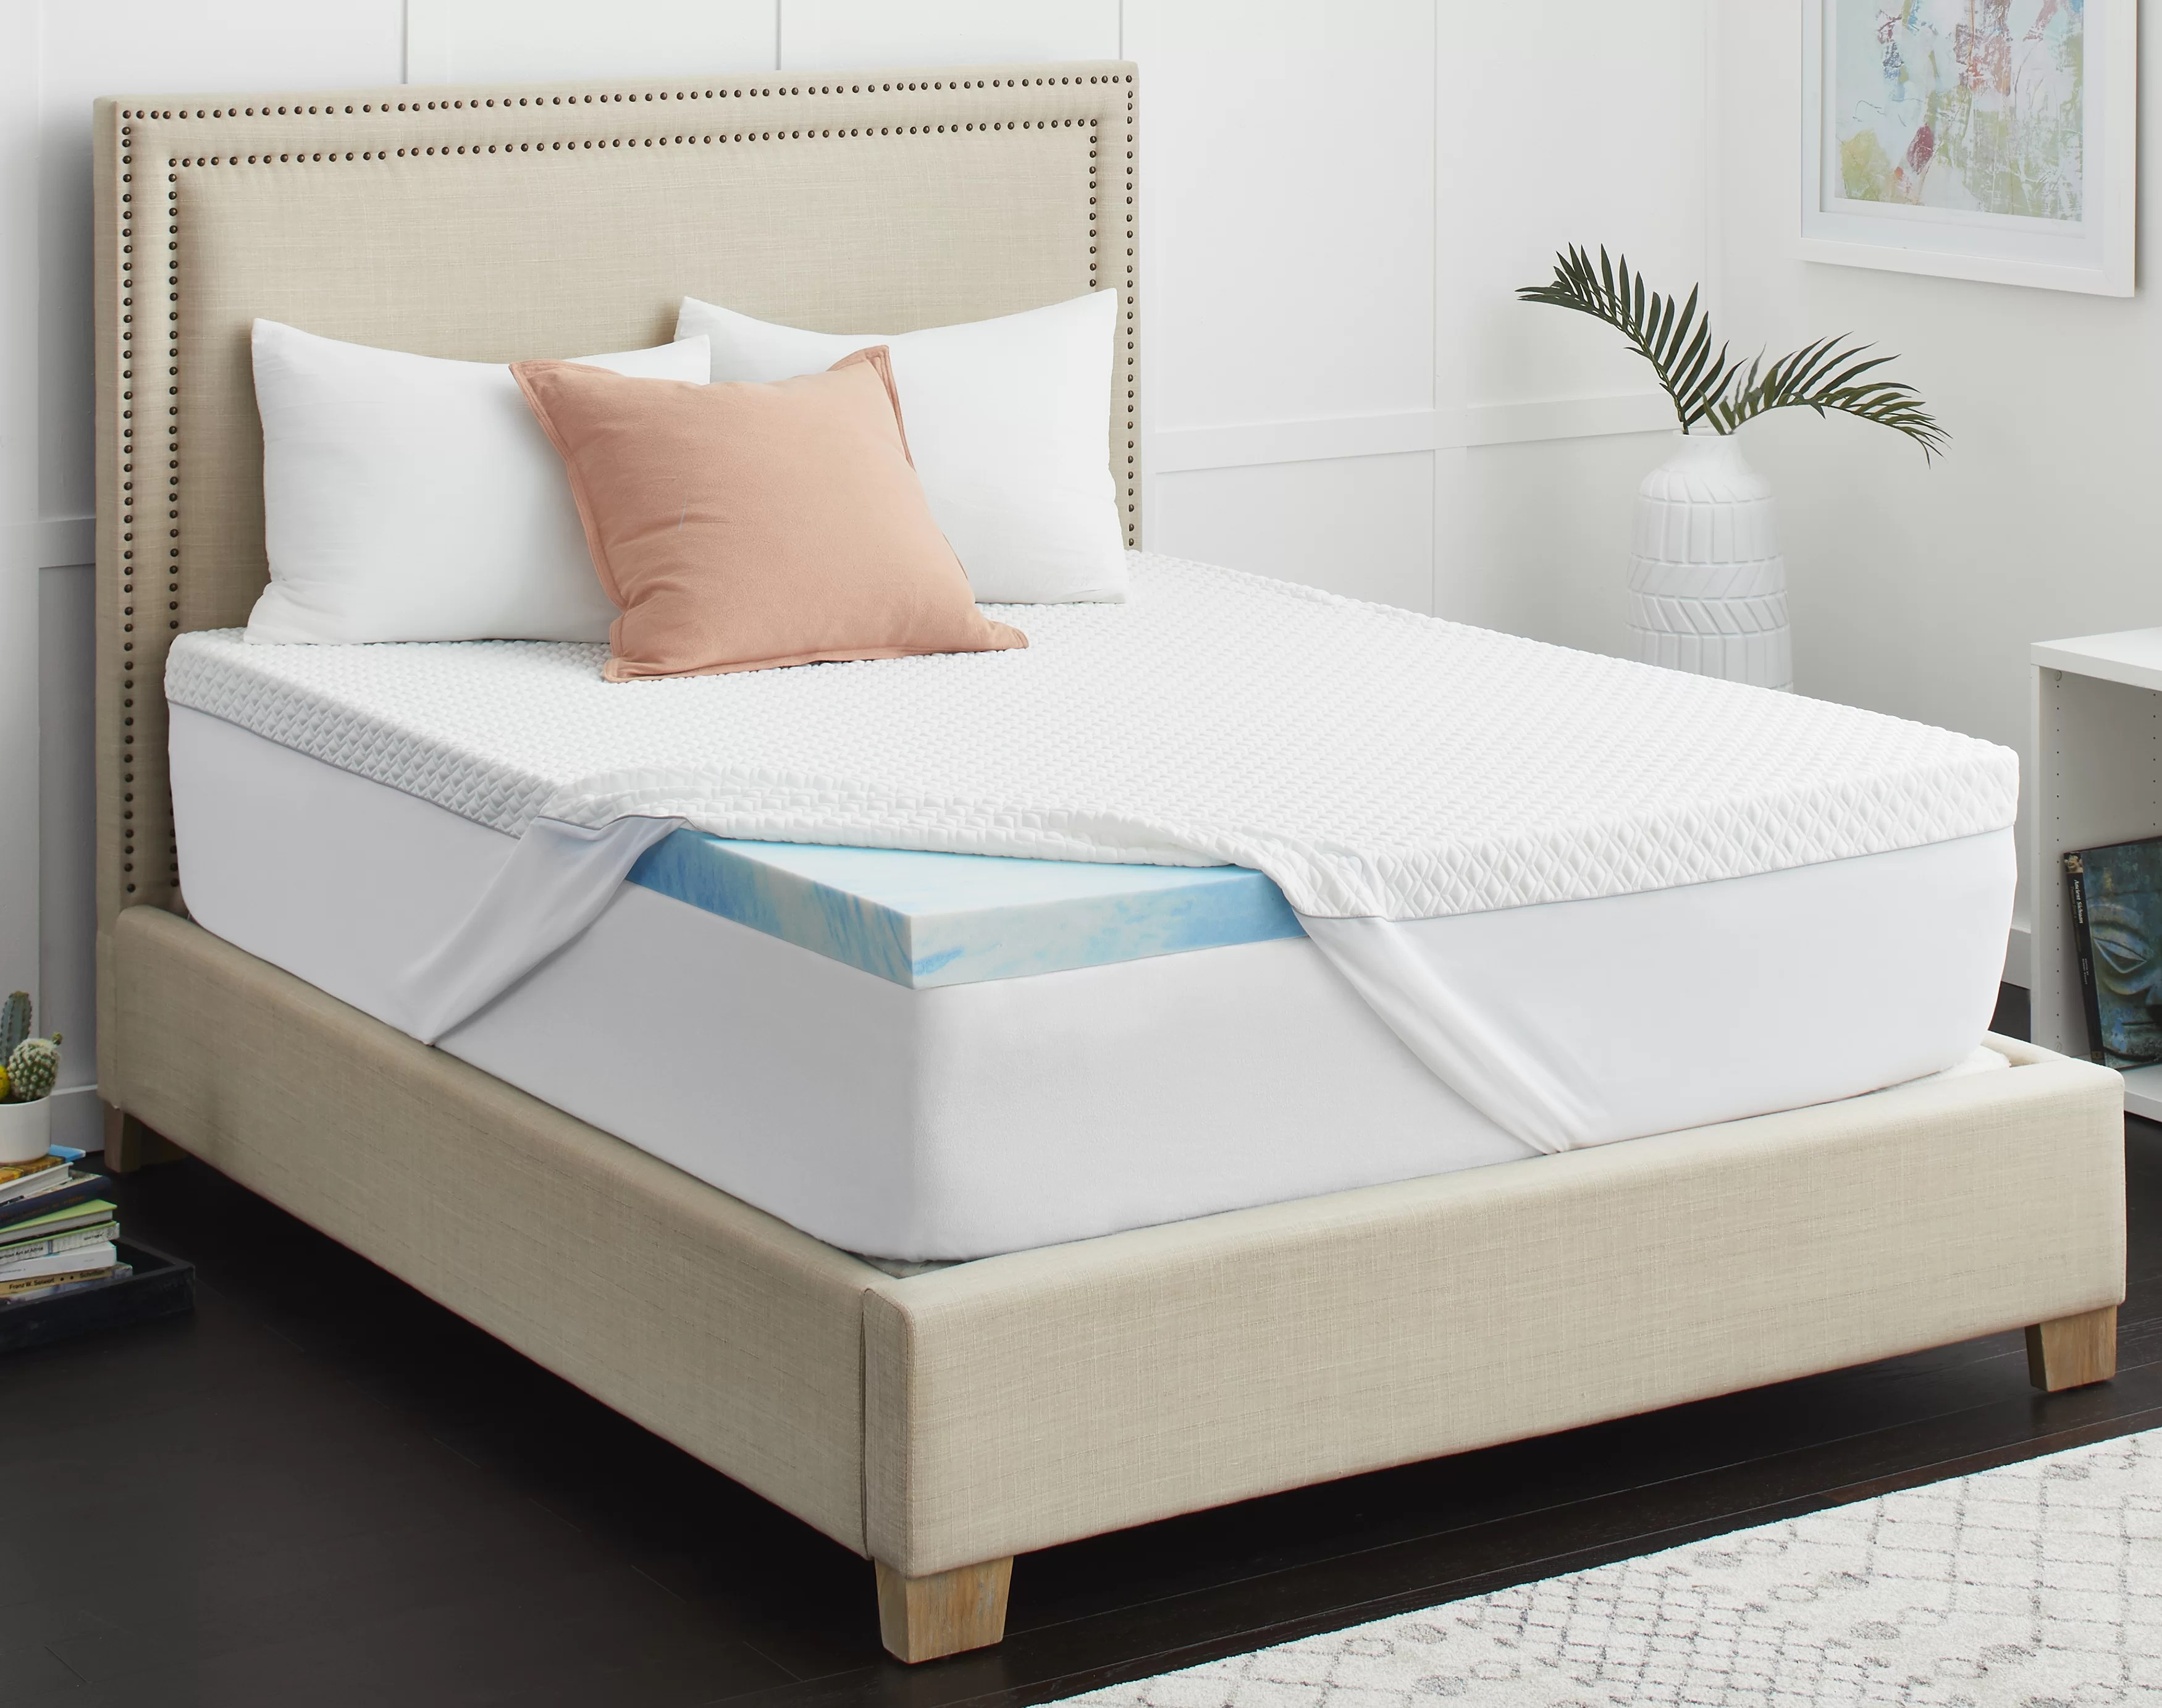 Sealychill 3 Memory Foam Mattress Topper With Cool Clean Technology Reviews